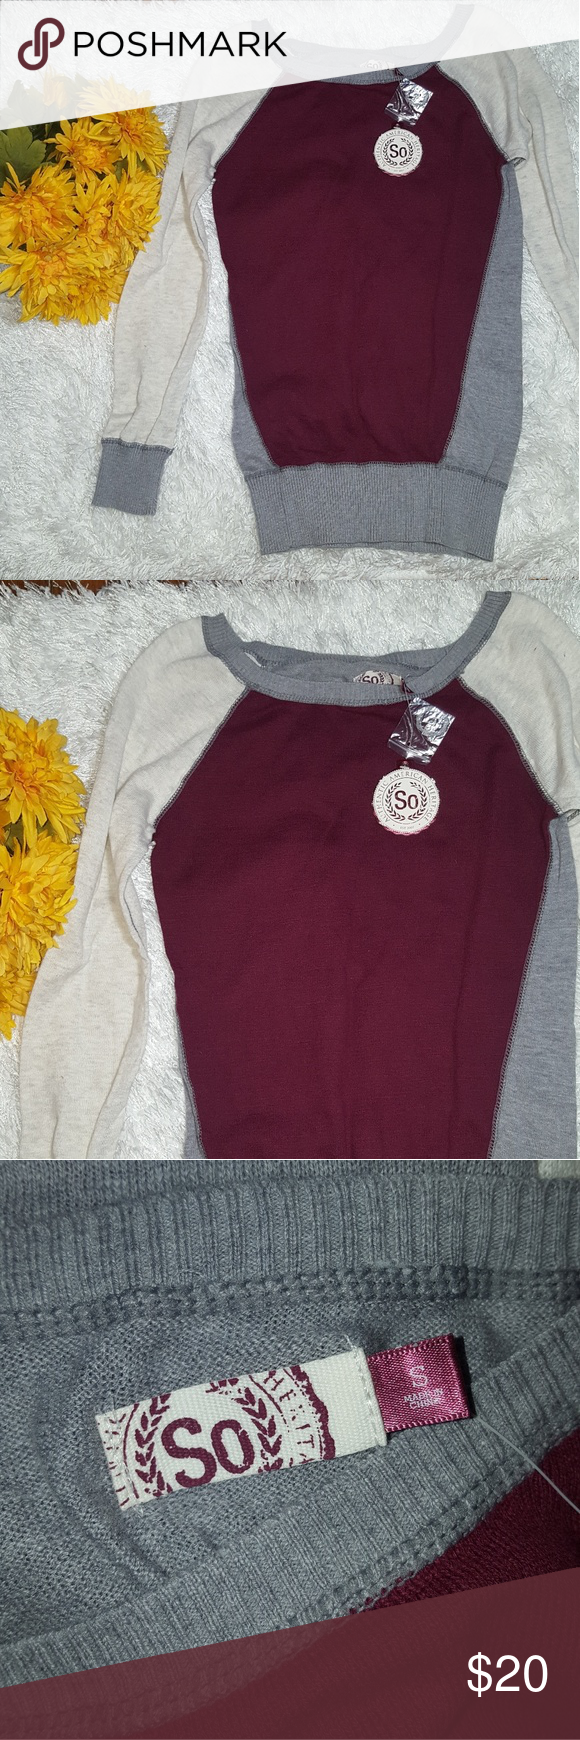 SO American Heritage Sweater NWT | Scoop neck, Customer support ...